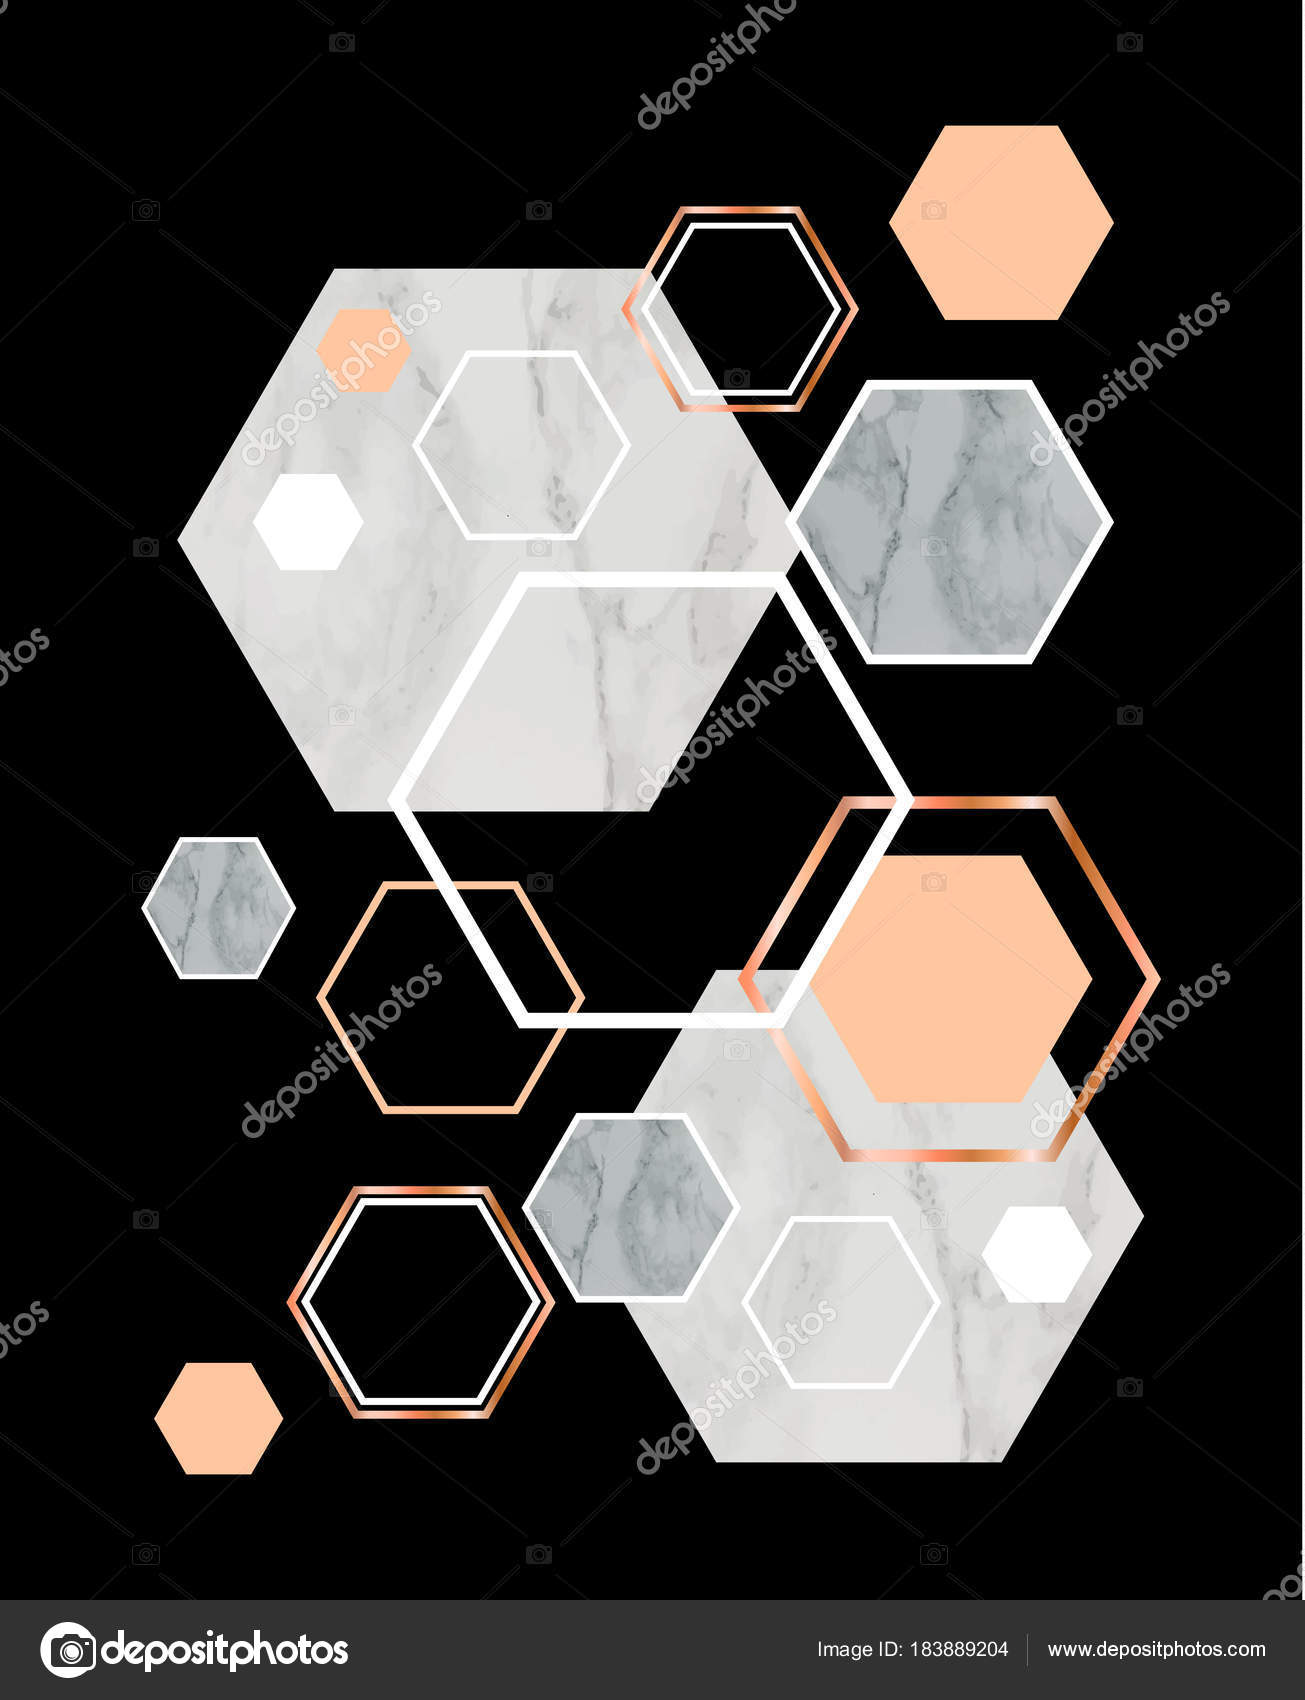 Rose Gold Black Marble Wallpaper Black Background With Marble Rose Gold Hexagons Geometric Prin Stock Vector C Illizium 183889204